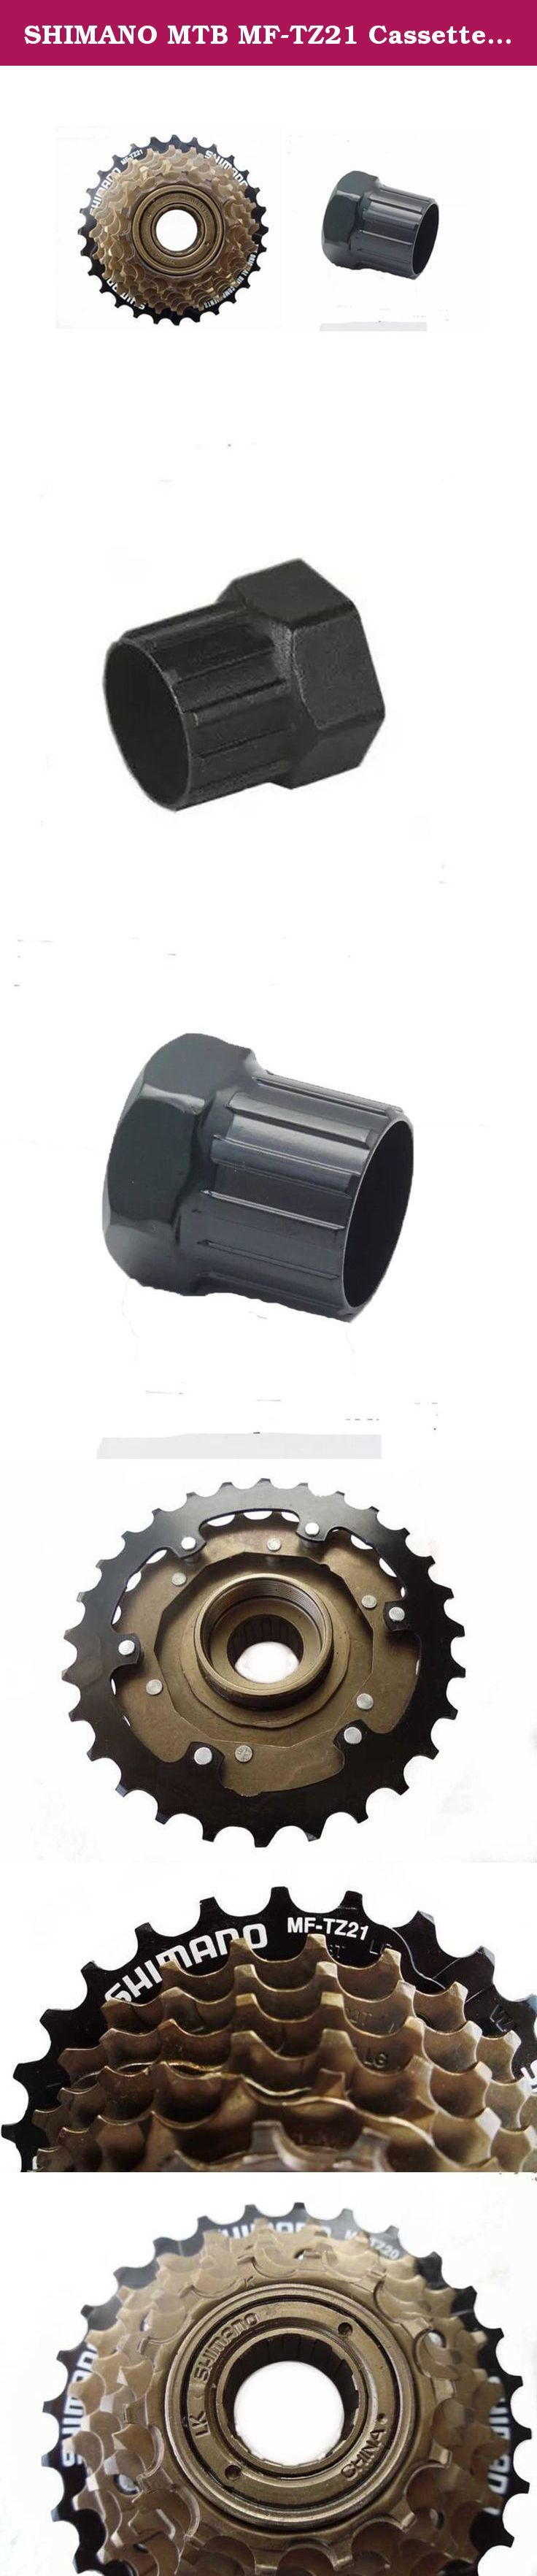 SHIMANO MTB MF-TZ21 Cassette Freewheel 7S 14-28T Bicycle Parts, and Park Tool FR-1 Freewheel Remover for Shimano Freewheels. • Fits Shimano splined remover • Ramps and bevels built into each cog • Includes 7spd .